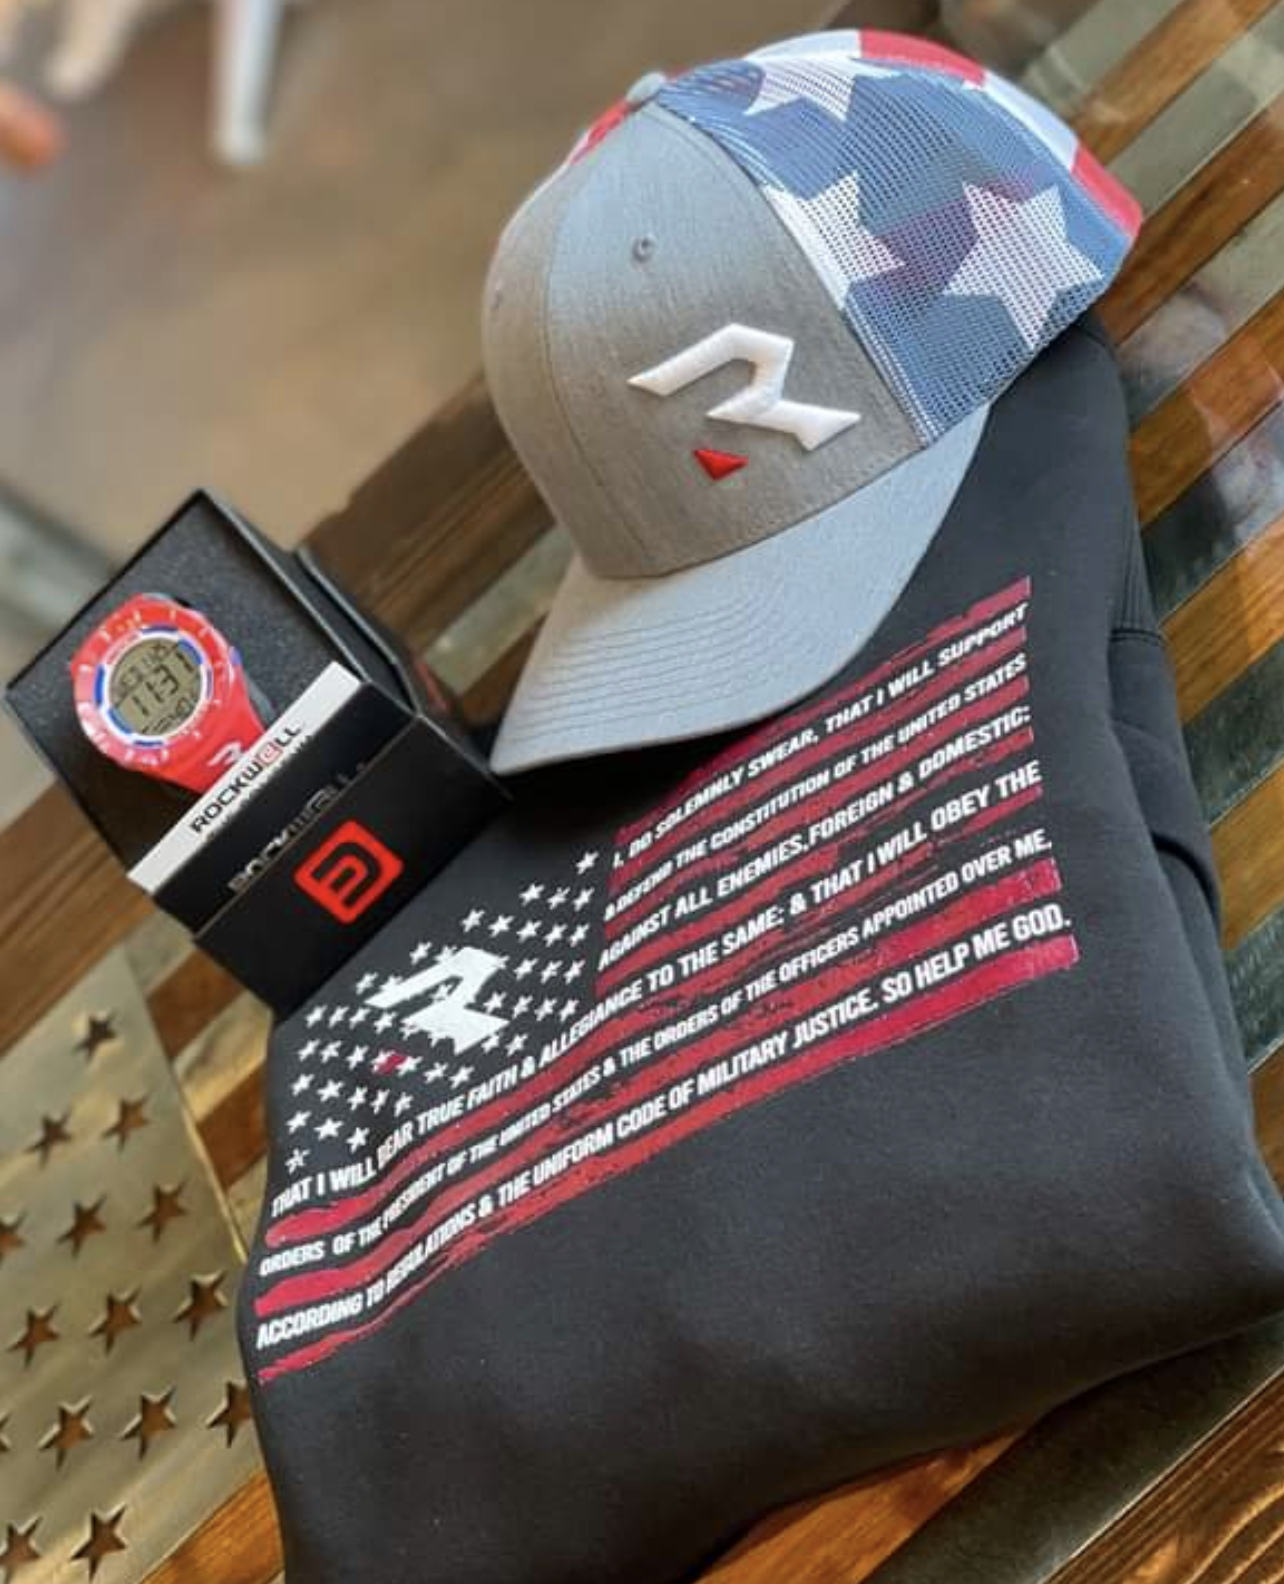 Redemption watch, cap, and shirt